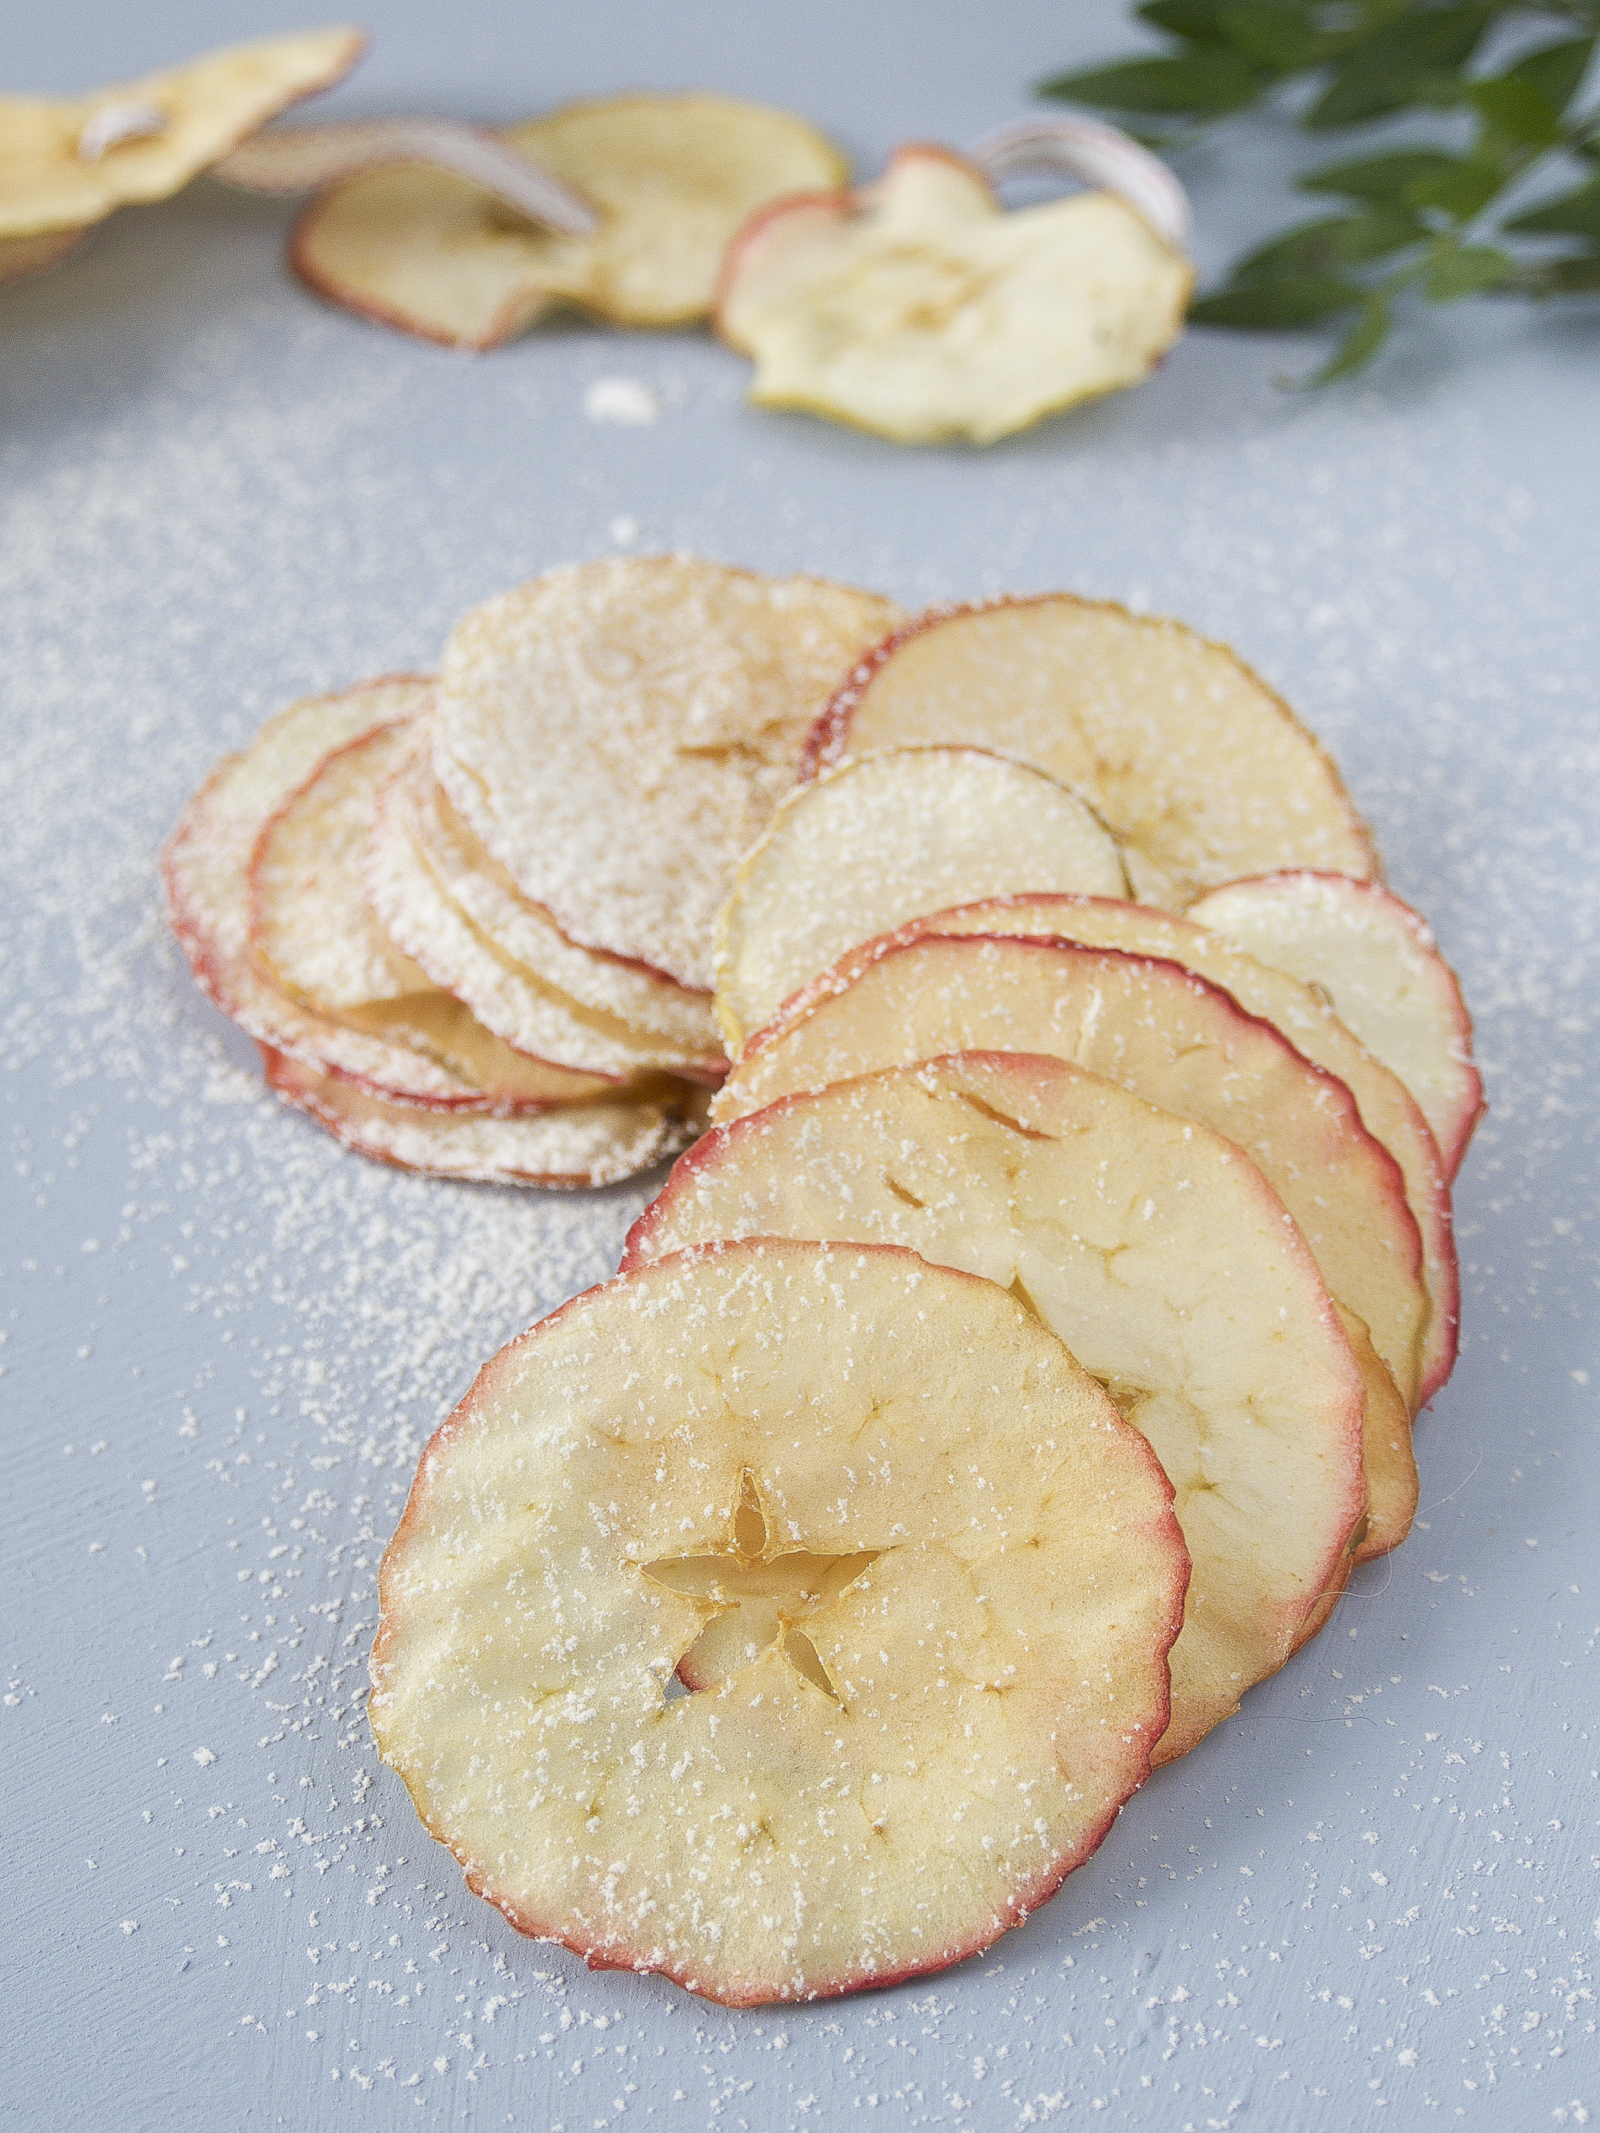 lemon flavored dried apples